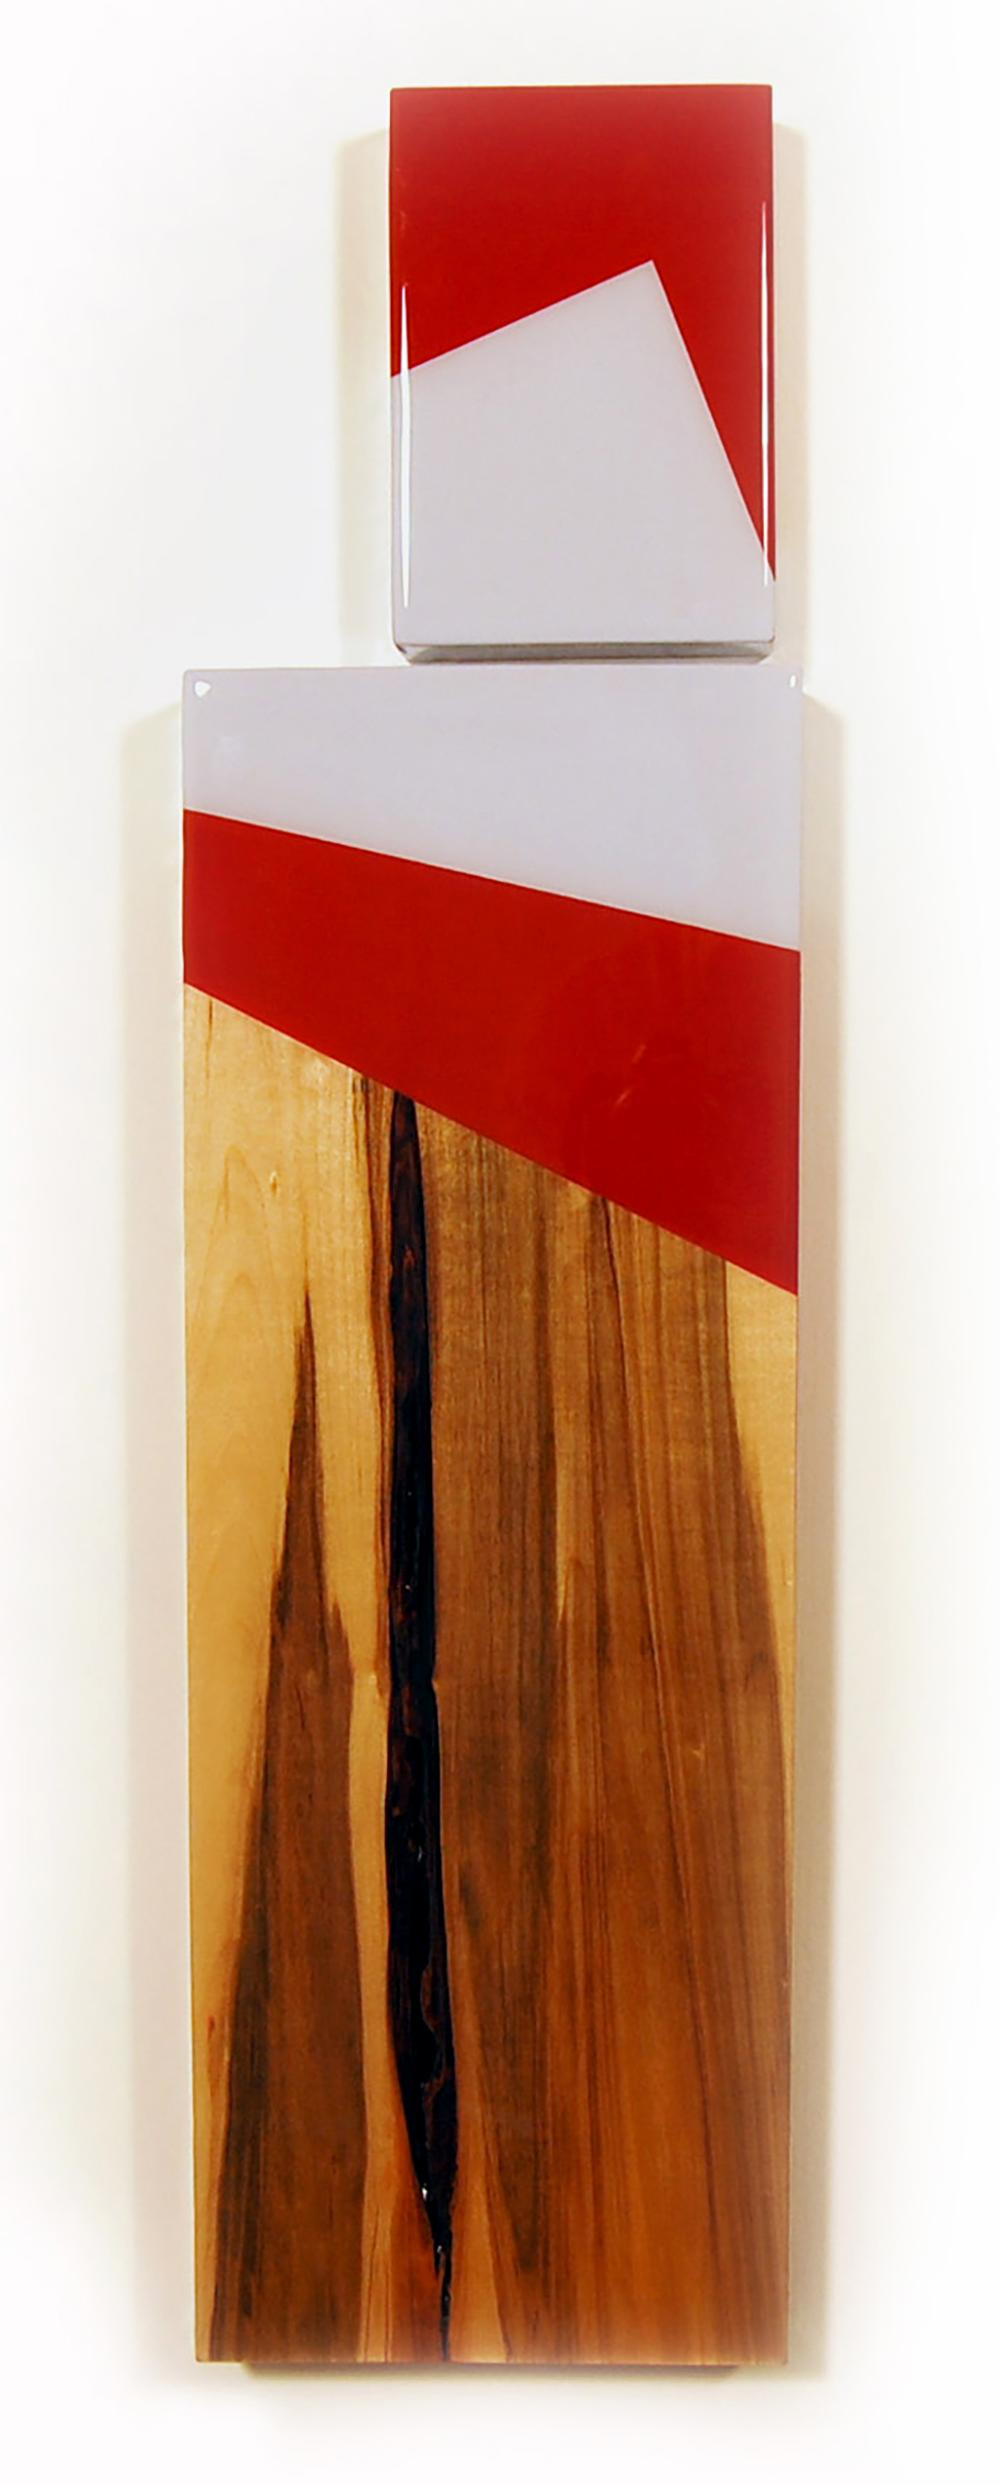 Puzzle 97, David E. Peterson, Contemporary Colorful Wooden Wall Sculpture